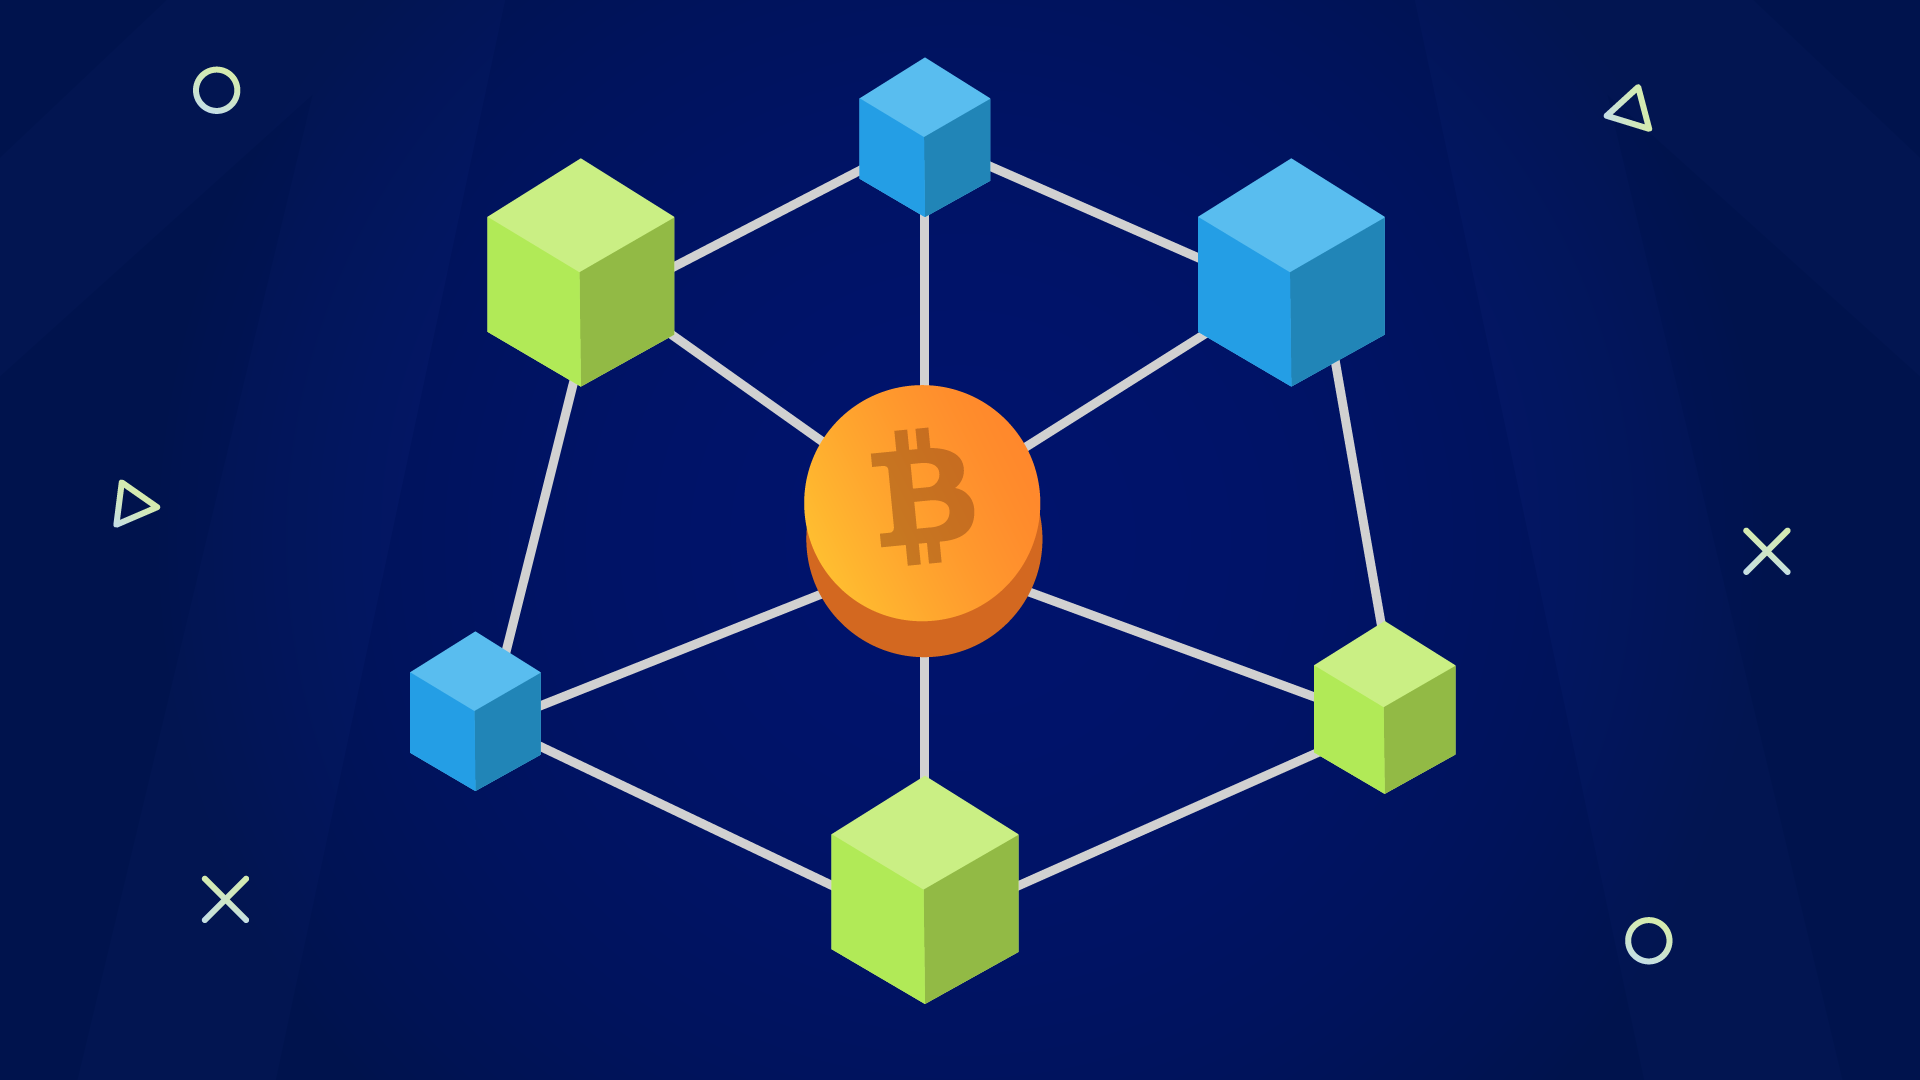 Can Bitcoin be traced in 2020?